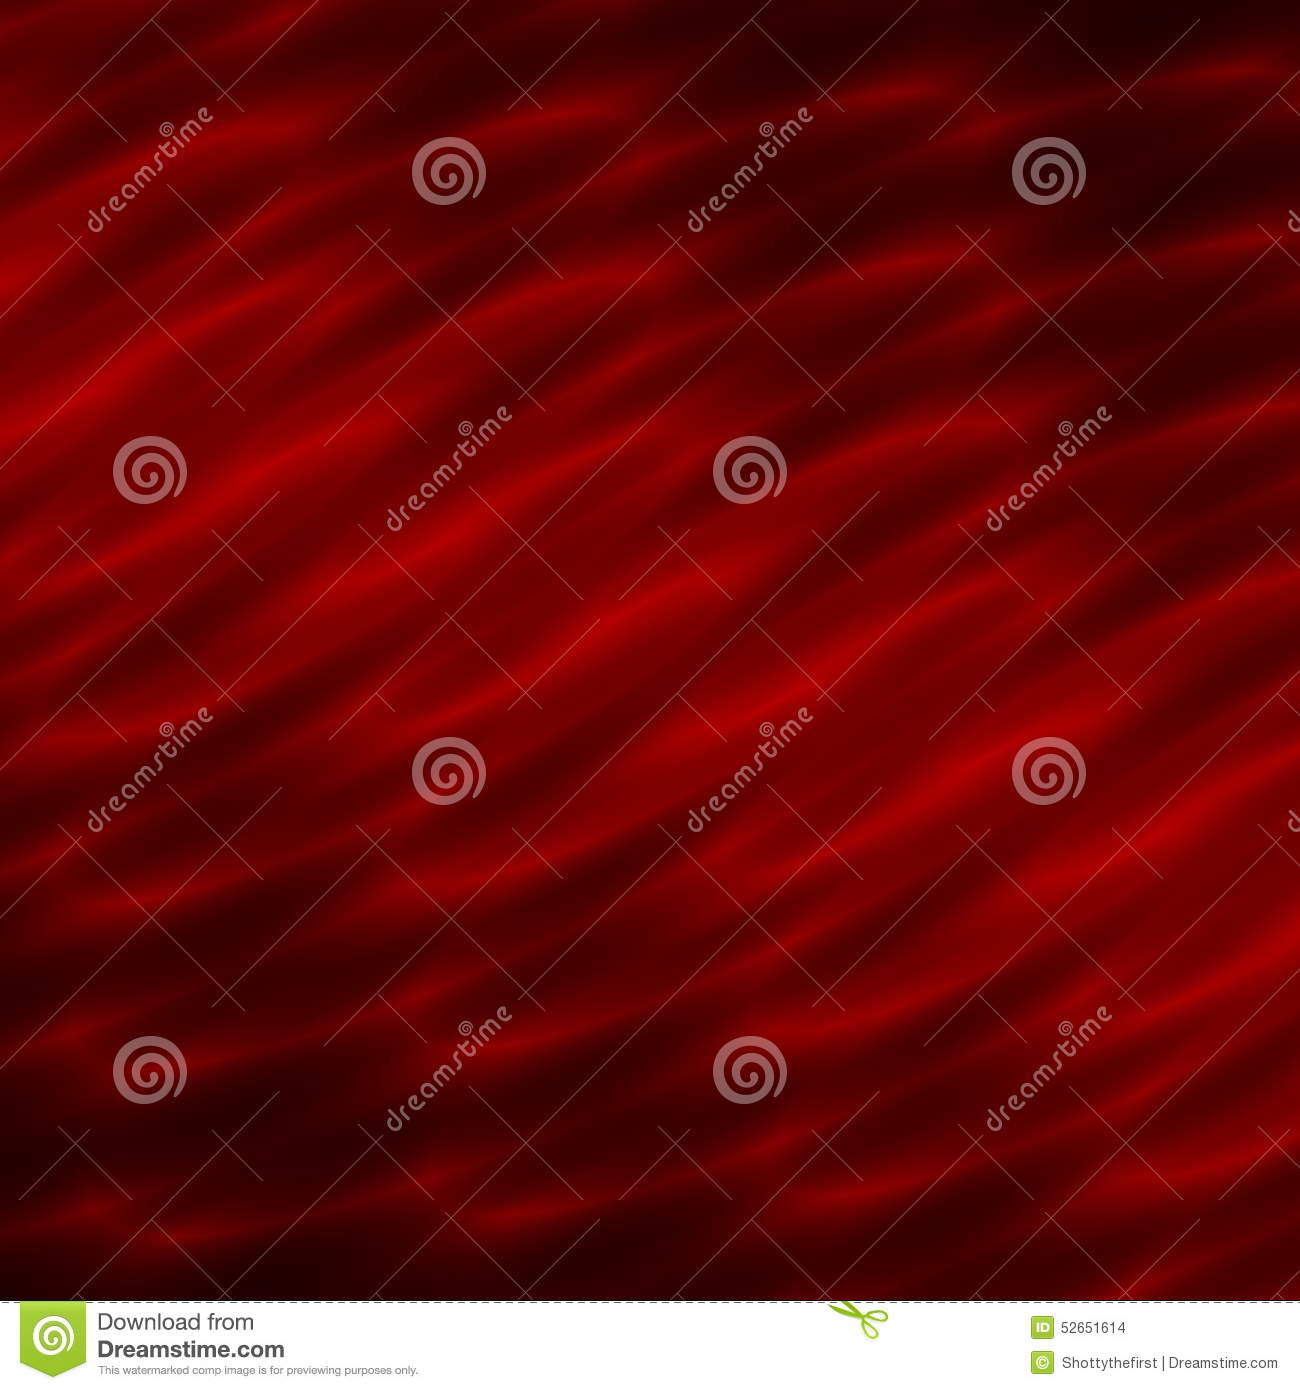 dark red wavy pattern  modern business background